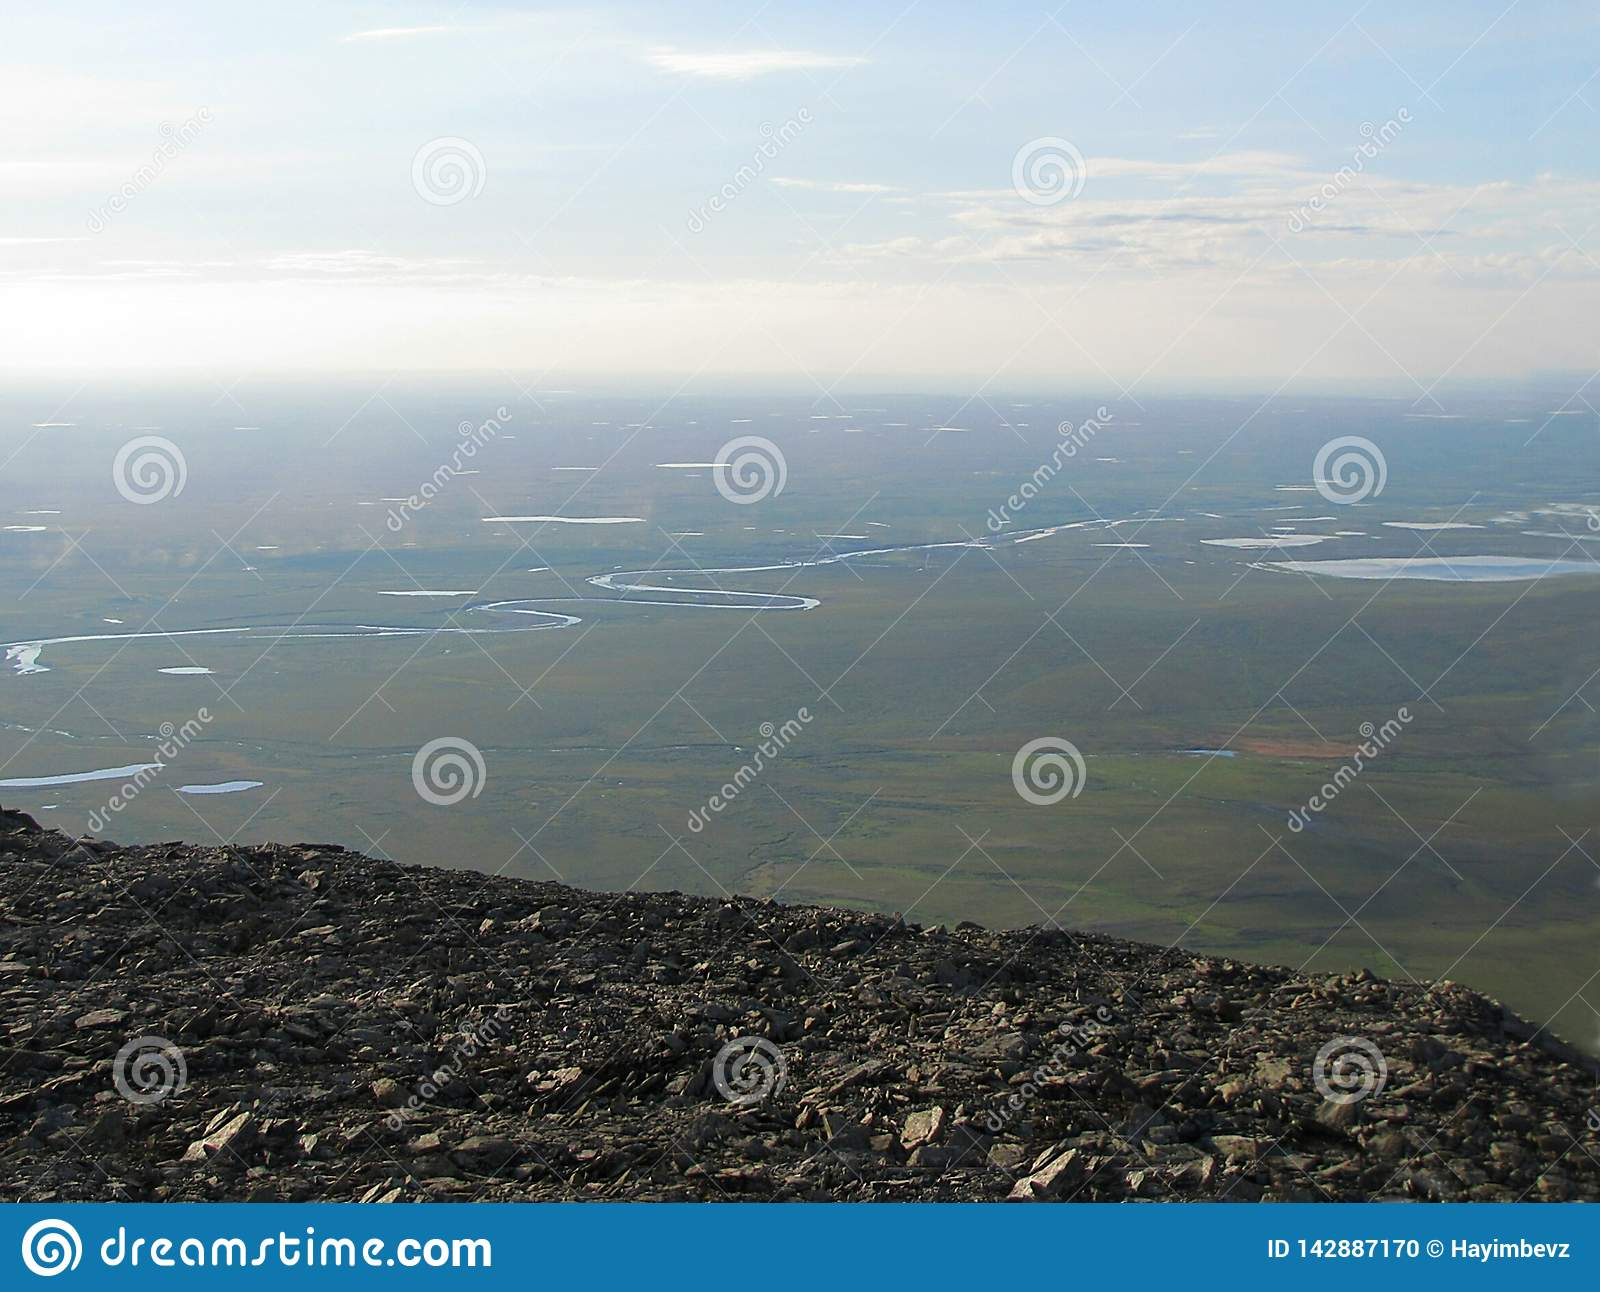 View from a high mountain in the tundra